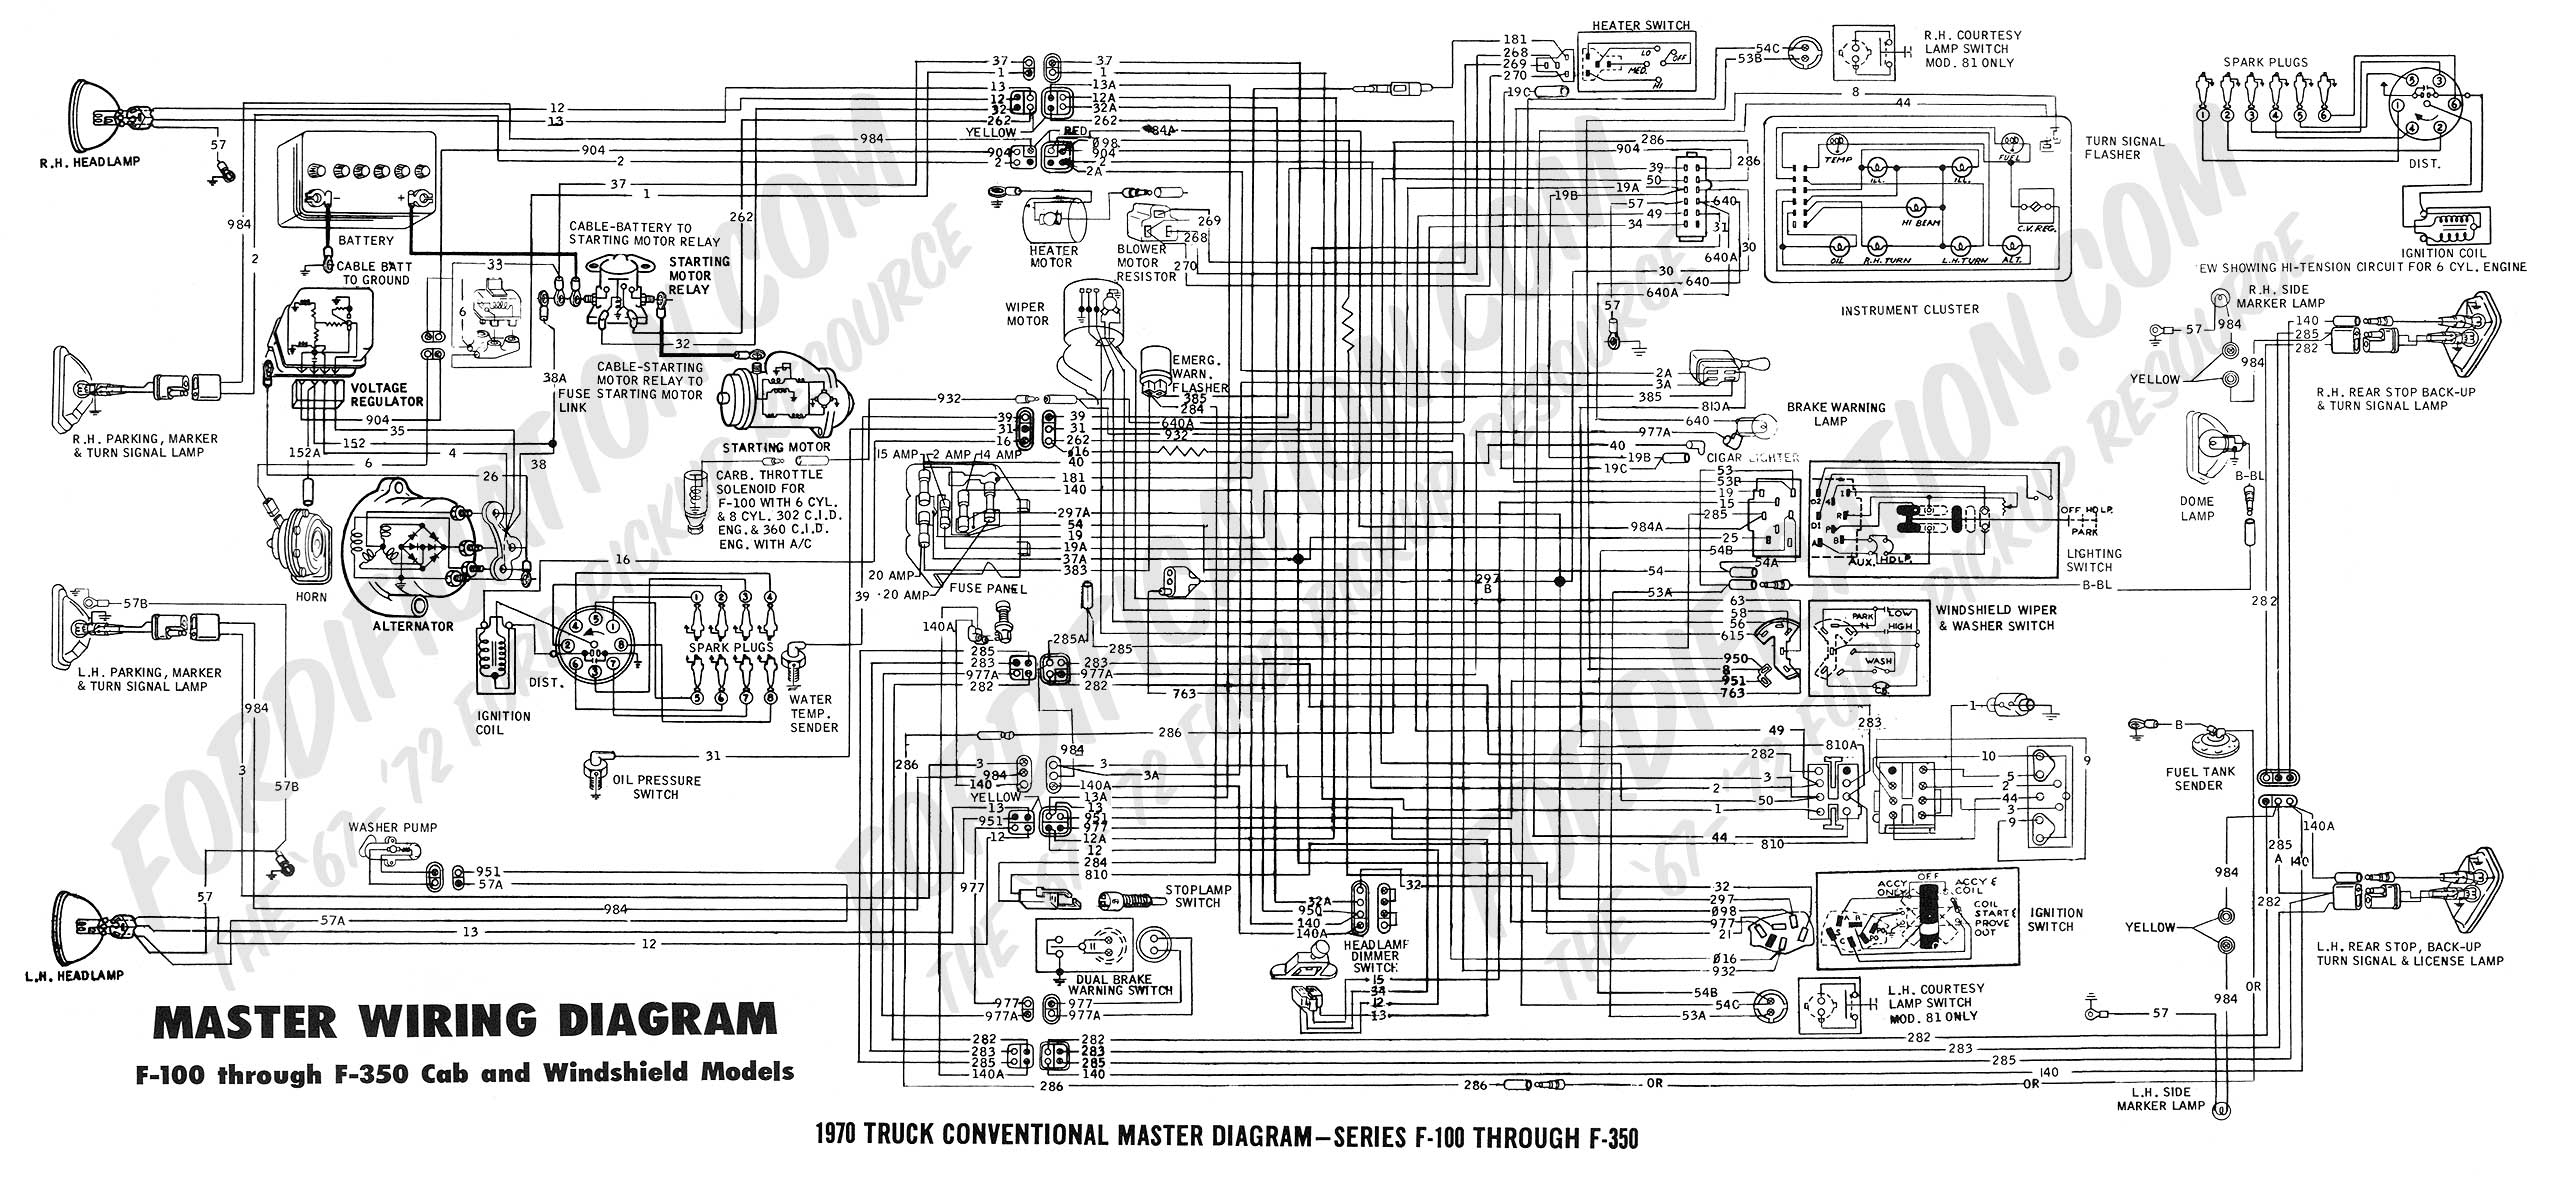 F350    Wiring       Diagram    Trailer   Trailer    Wiring       Diagram